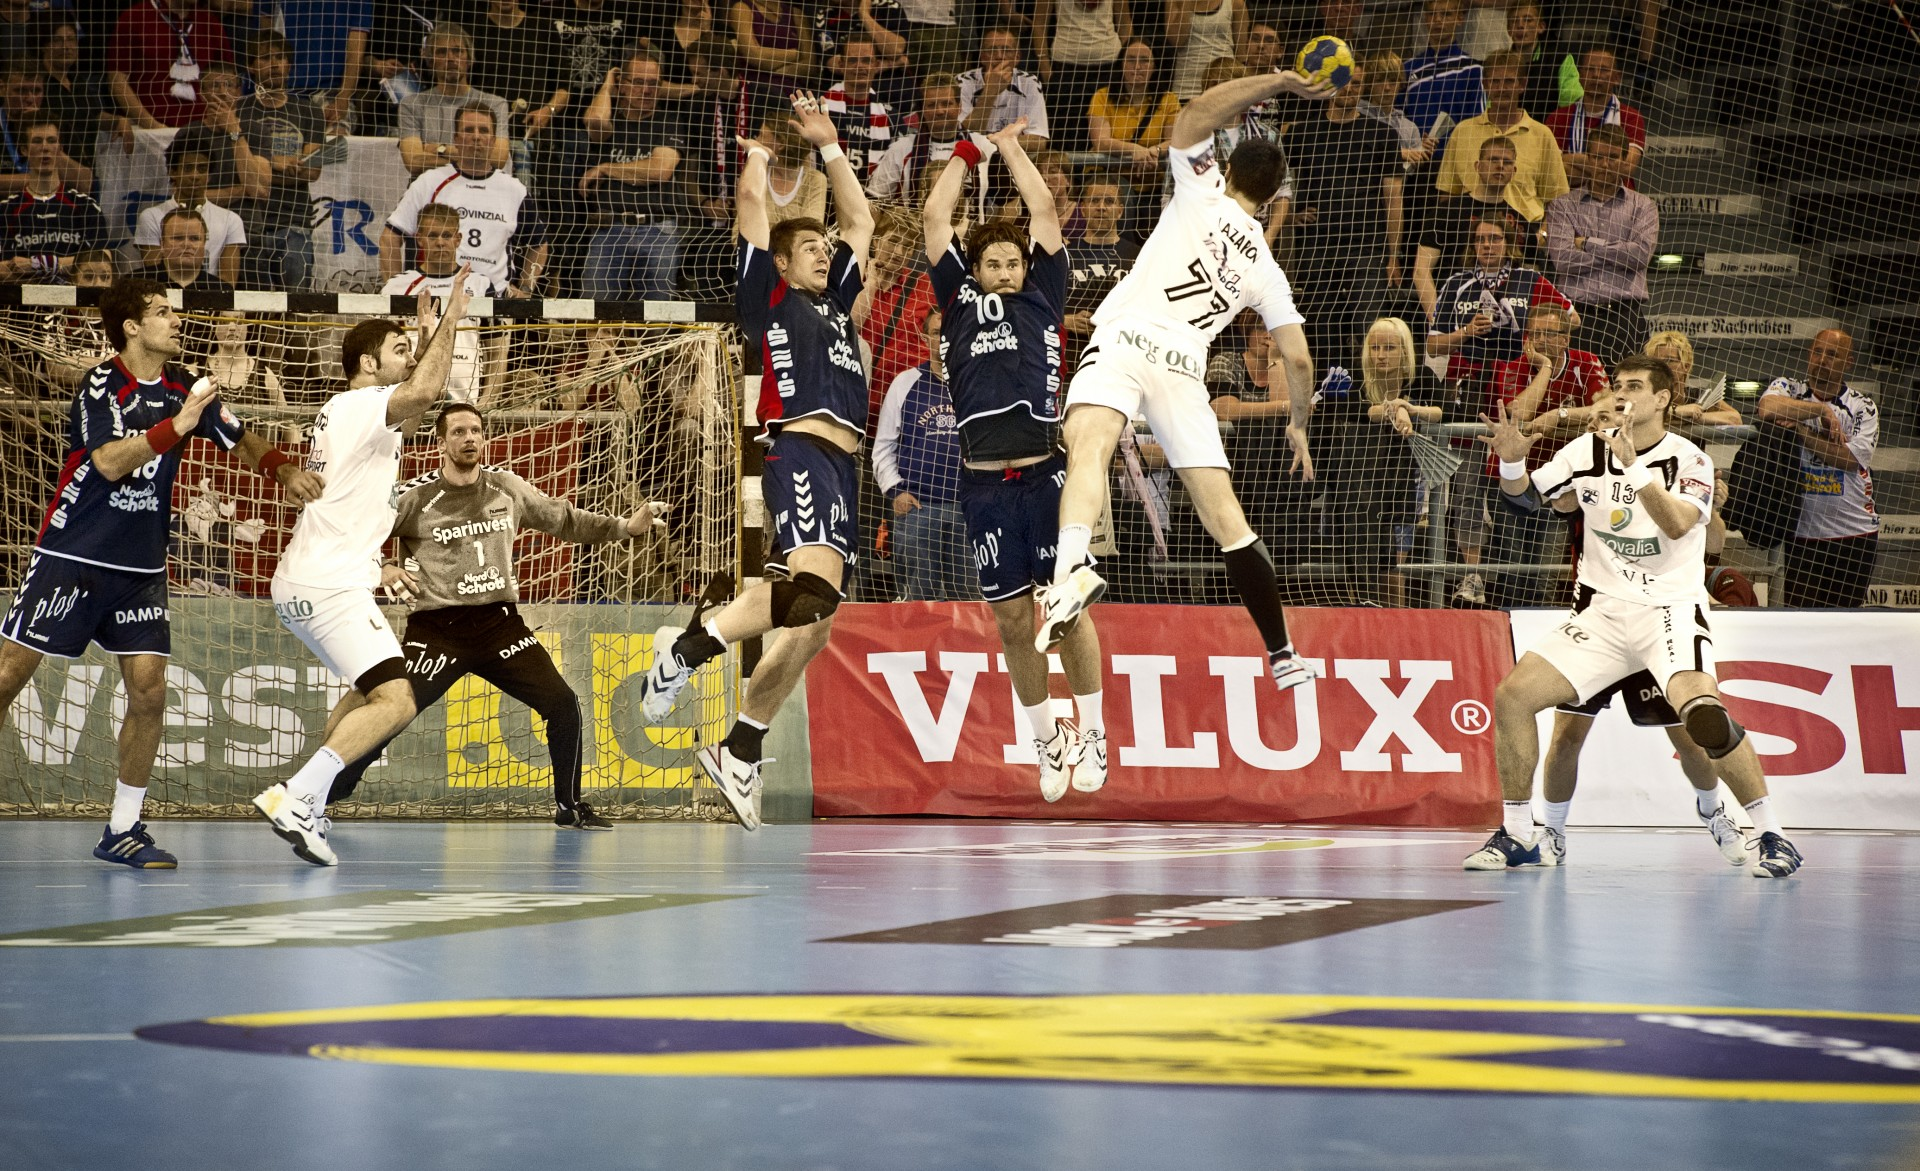 ehf champions league live